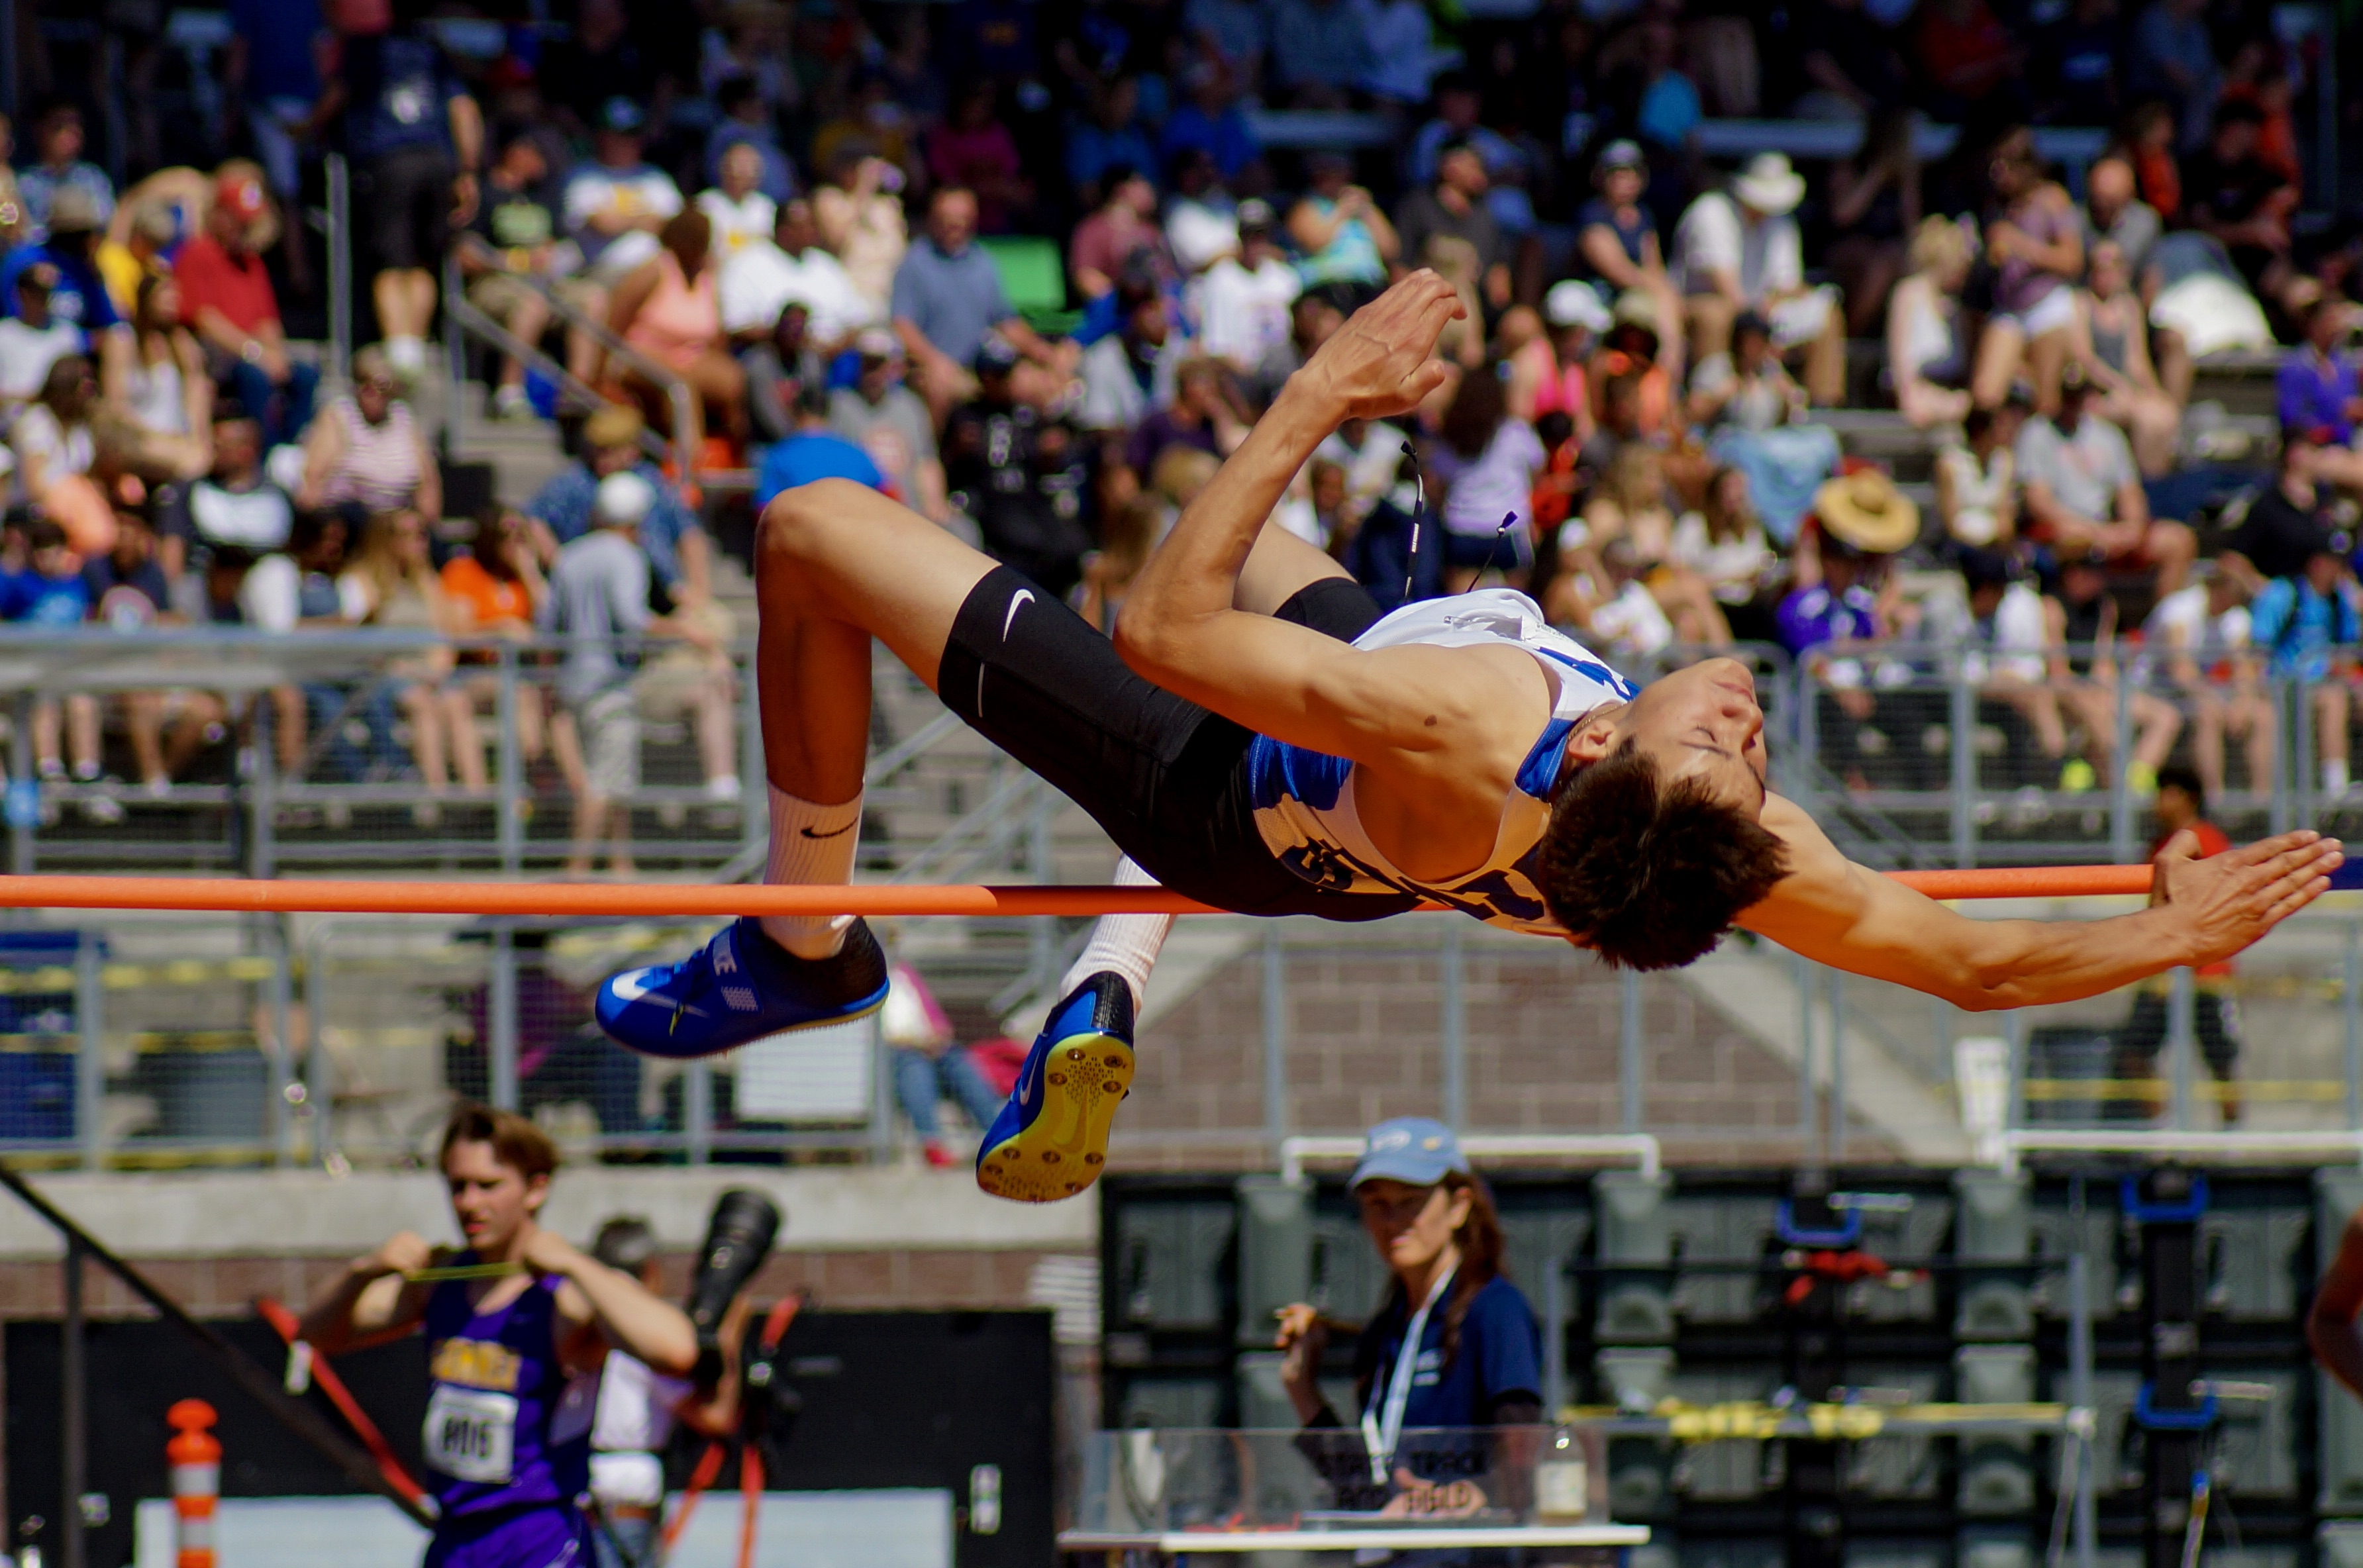 images/athletics/Track/Mitchell_Jacobson_Places_2nd_in_the_Boys_High_Jump_at_the_WIAA_State_track_and_field_meet.jpg